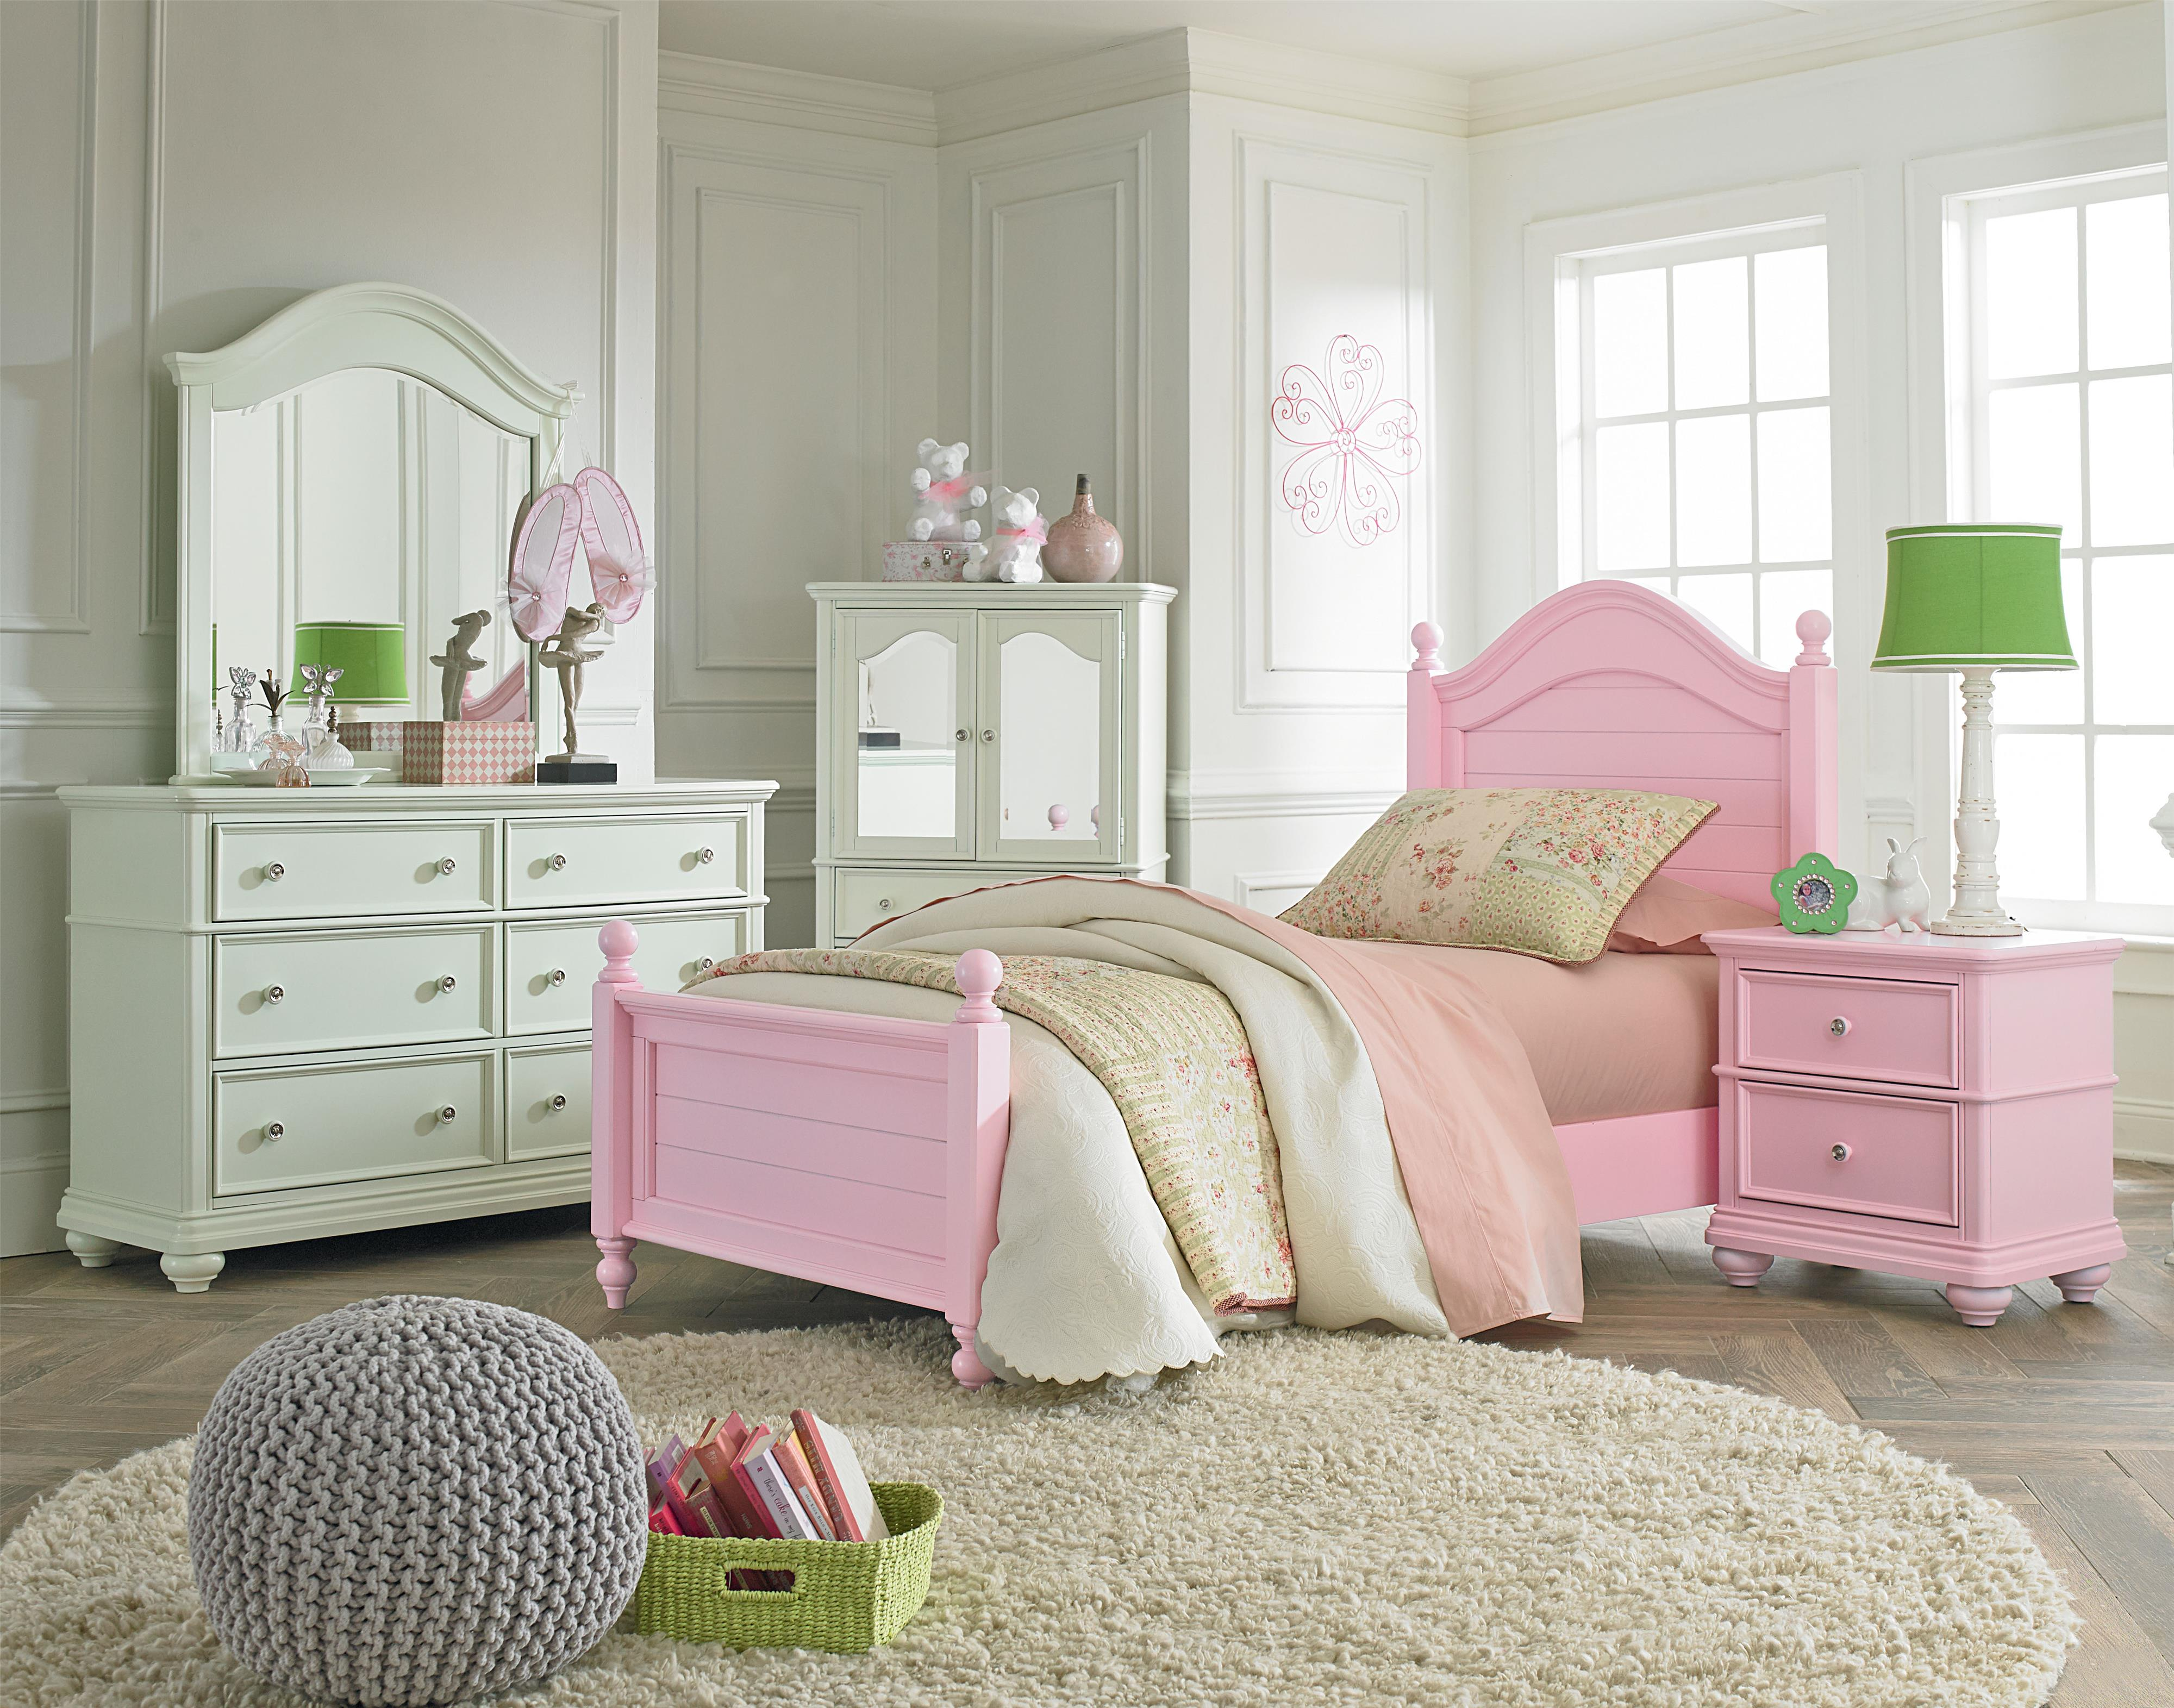 Standard Furniture Camellia Bubble Gum Twin Bedroom Group - Item Number: 95210 T Bedroom Group 1